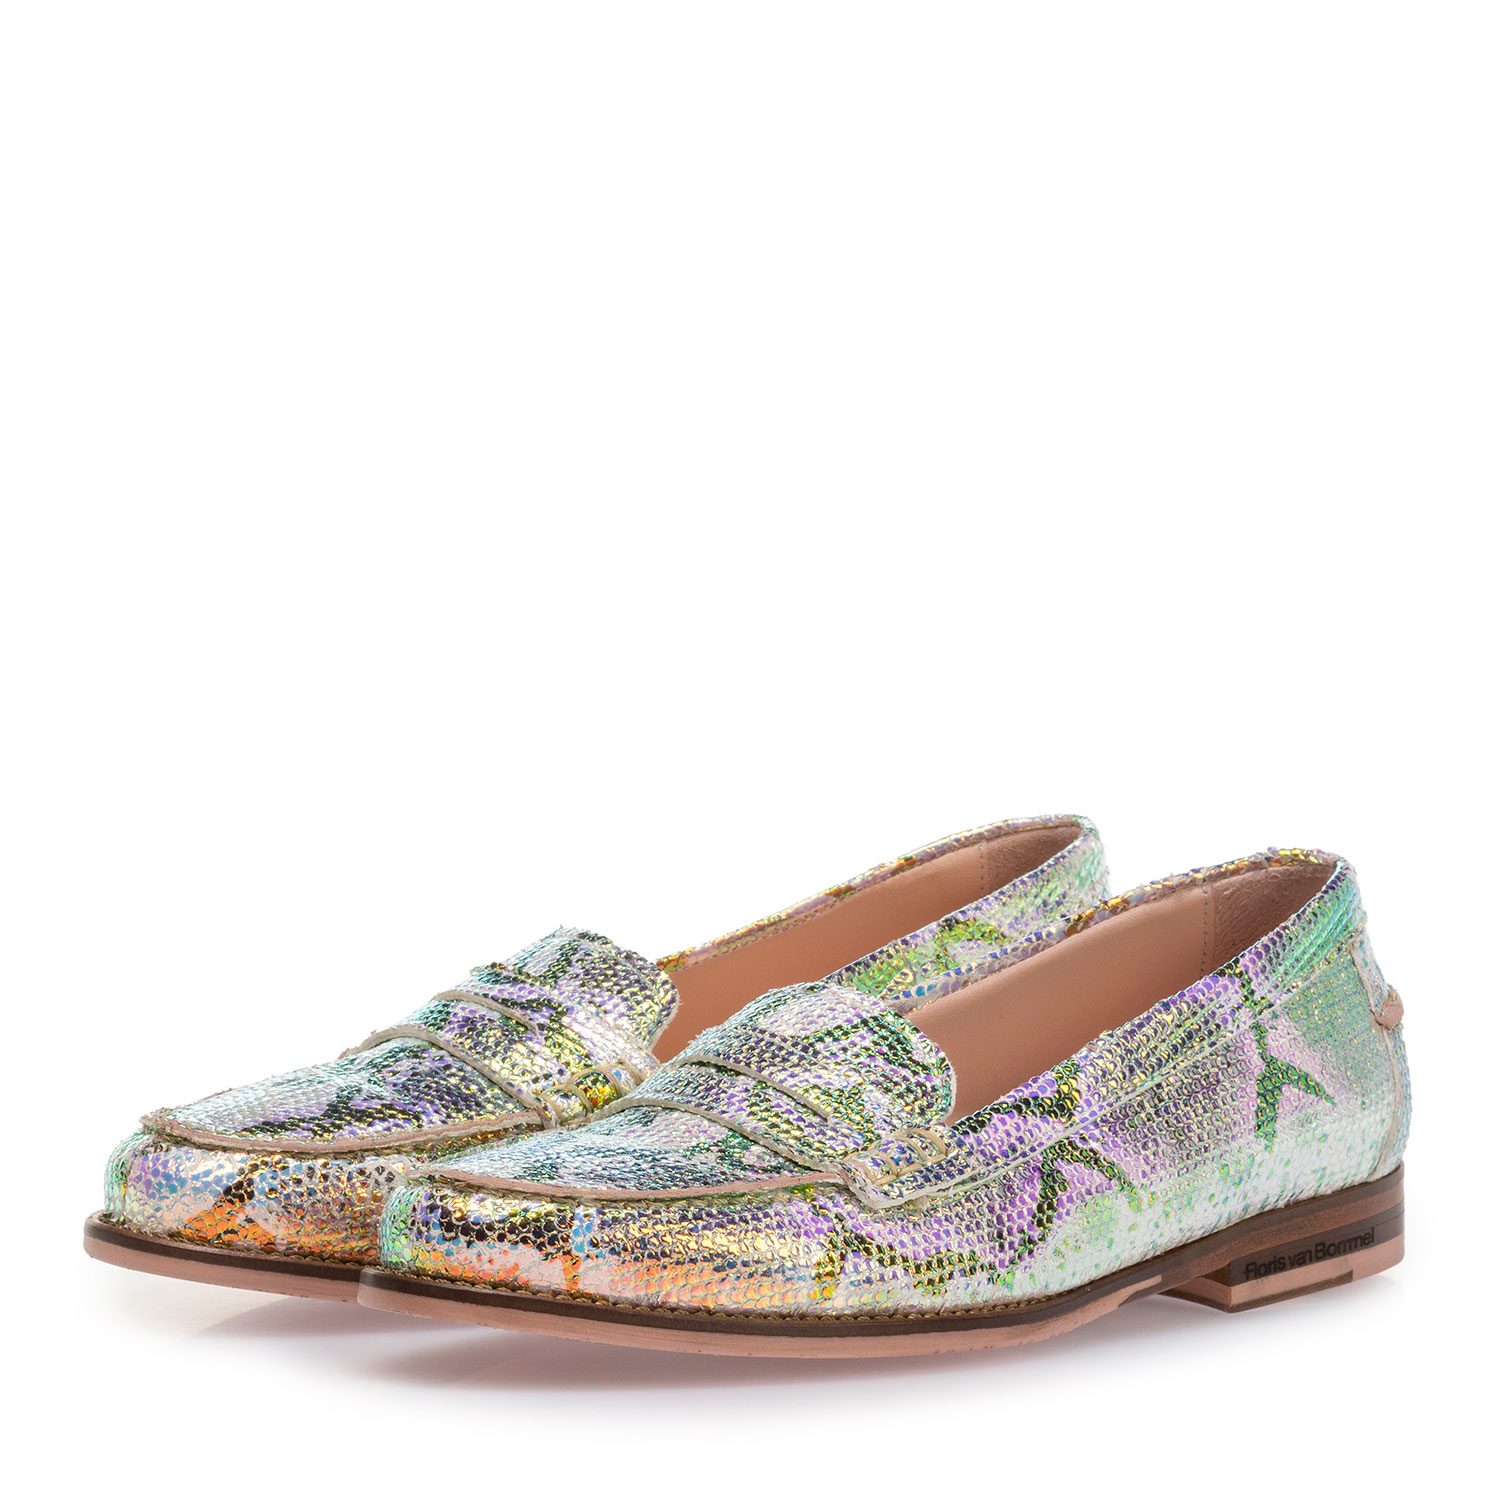 85409/15 - Leather loafer with green/gold metallic print